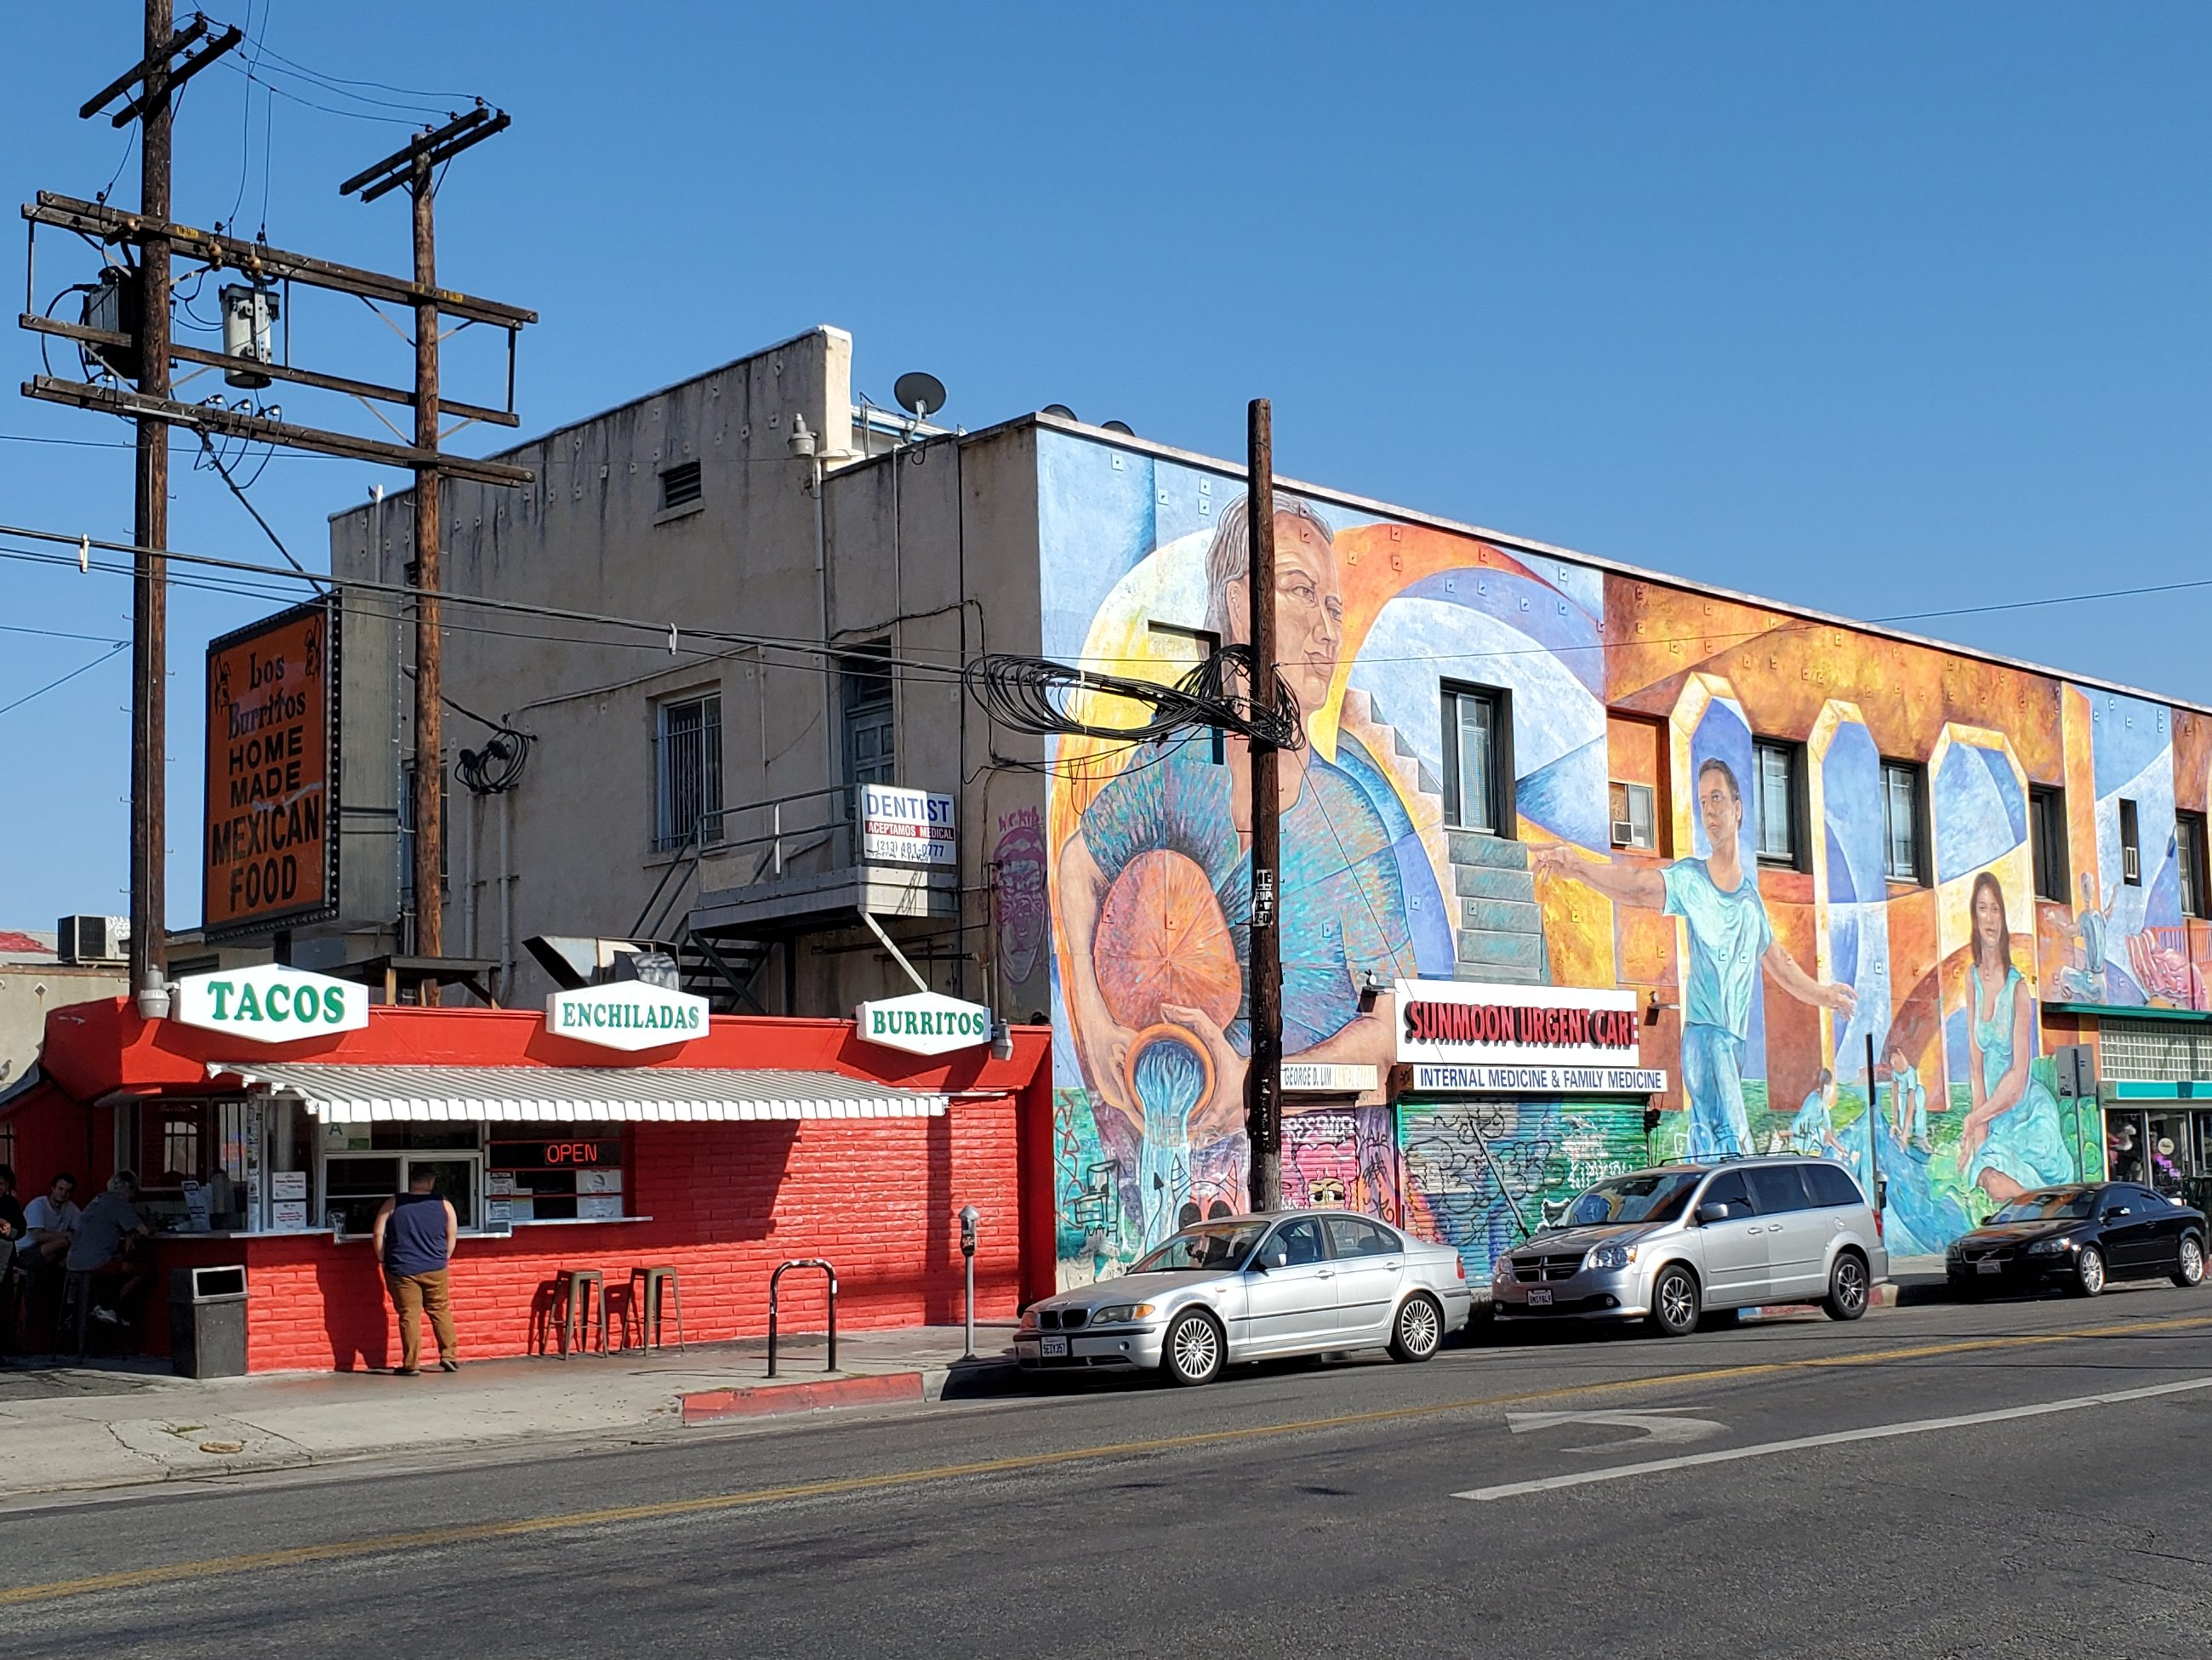 mexican food restaurant and painted mural on building with city street in foreground